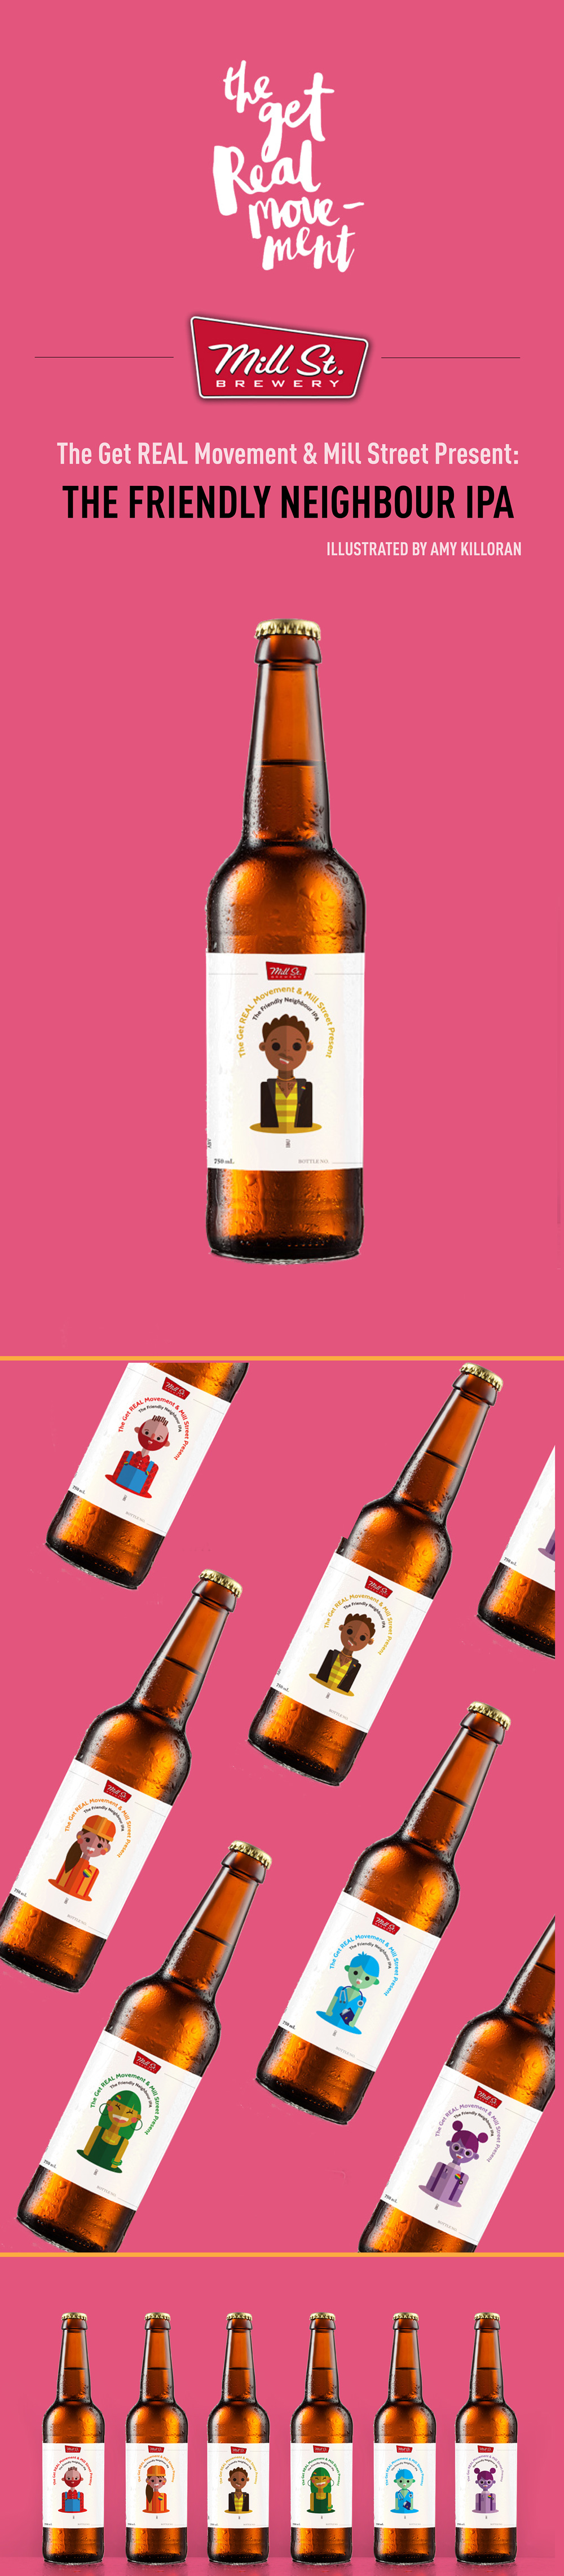 amy-killoran-get-real-movement-friendly-neighbour-beer-packaging.jpg